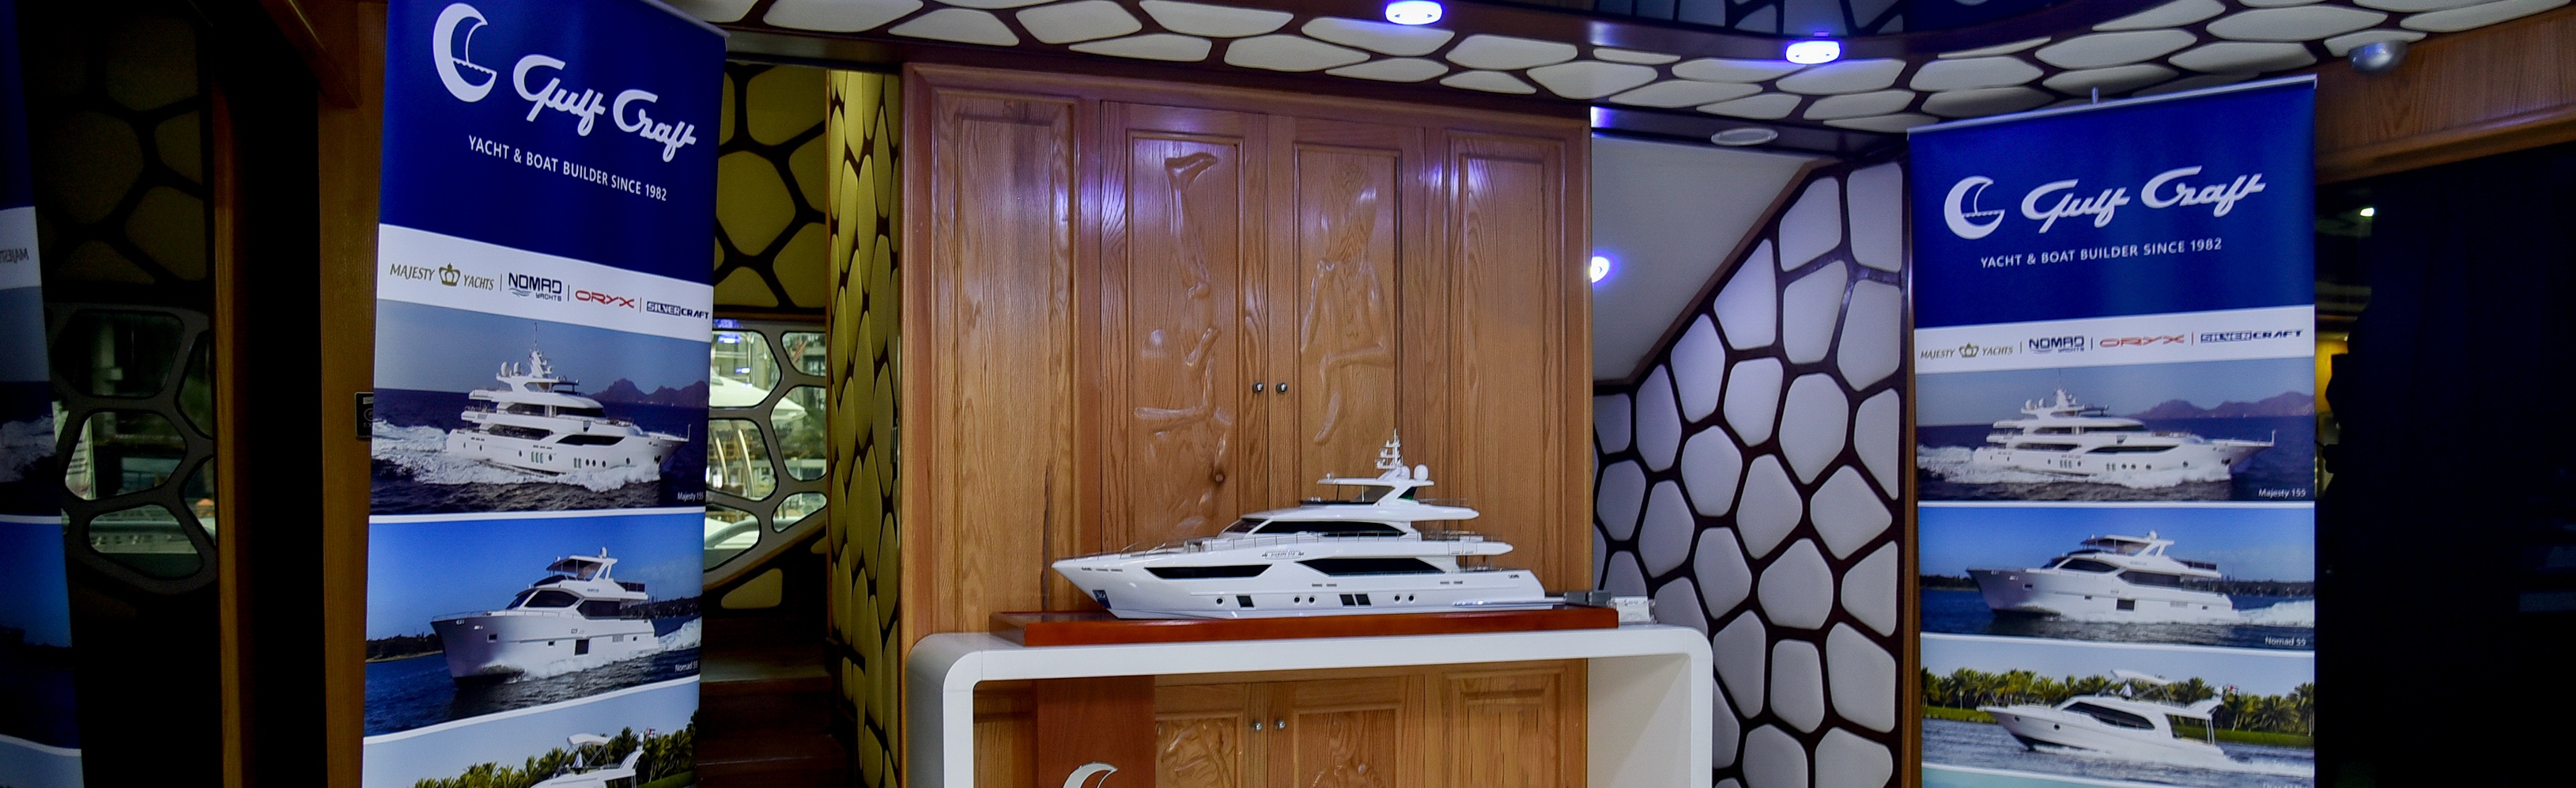 Gulf-Craft,-The-Luxury-Network.jpg